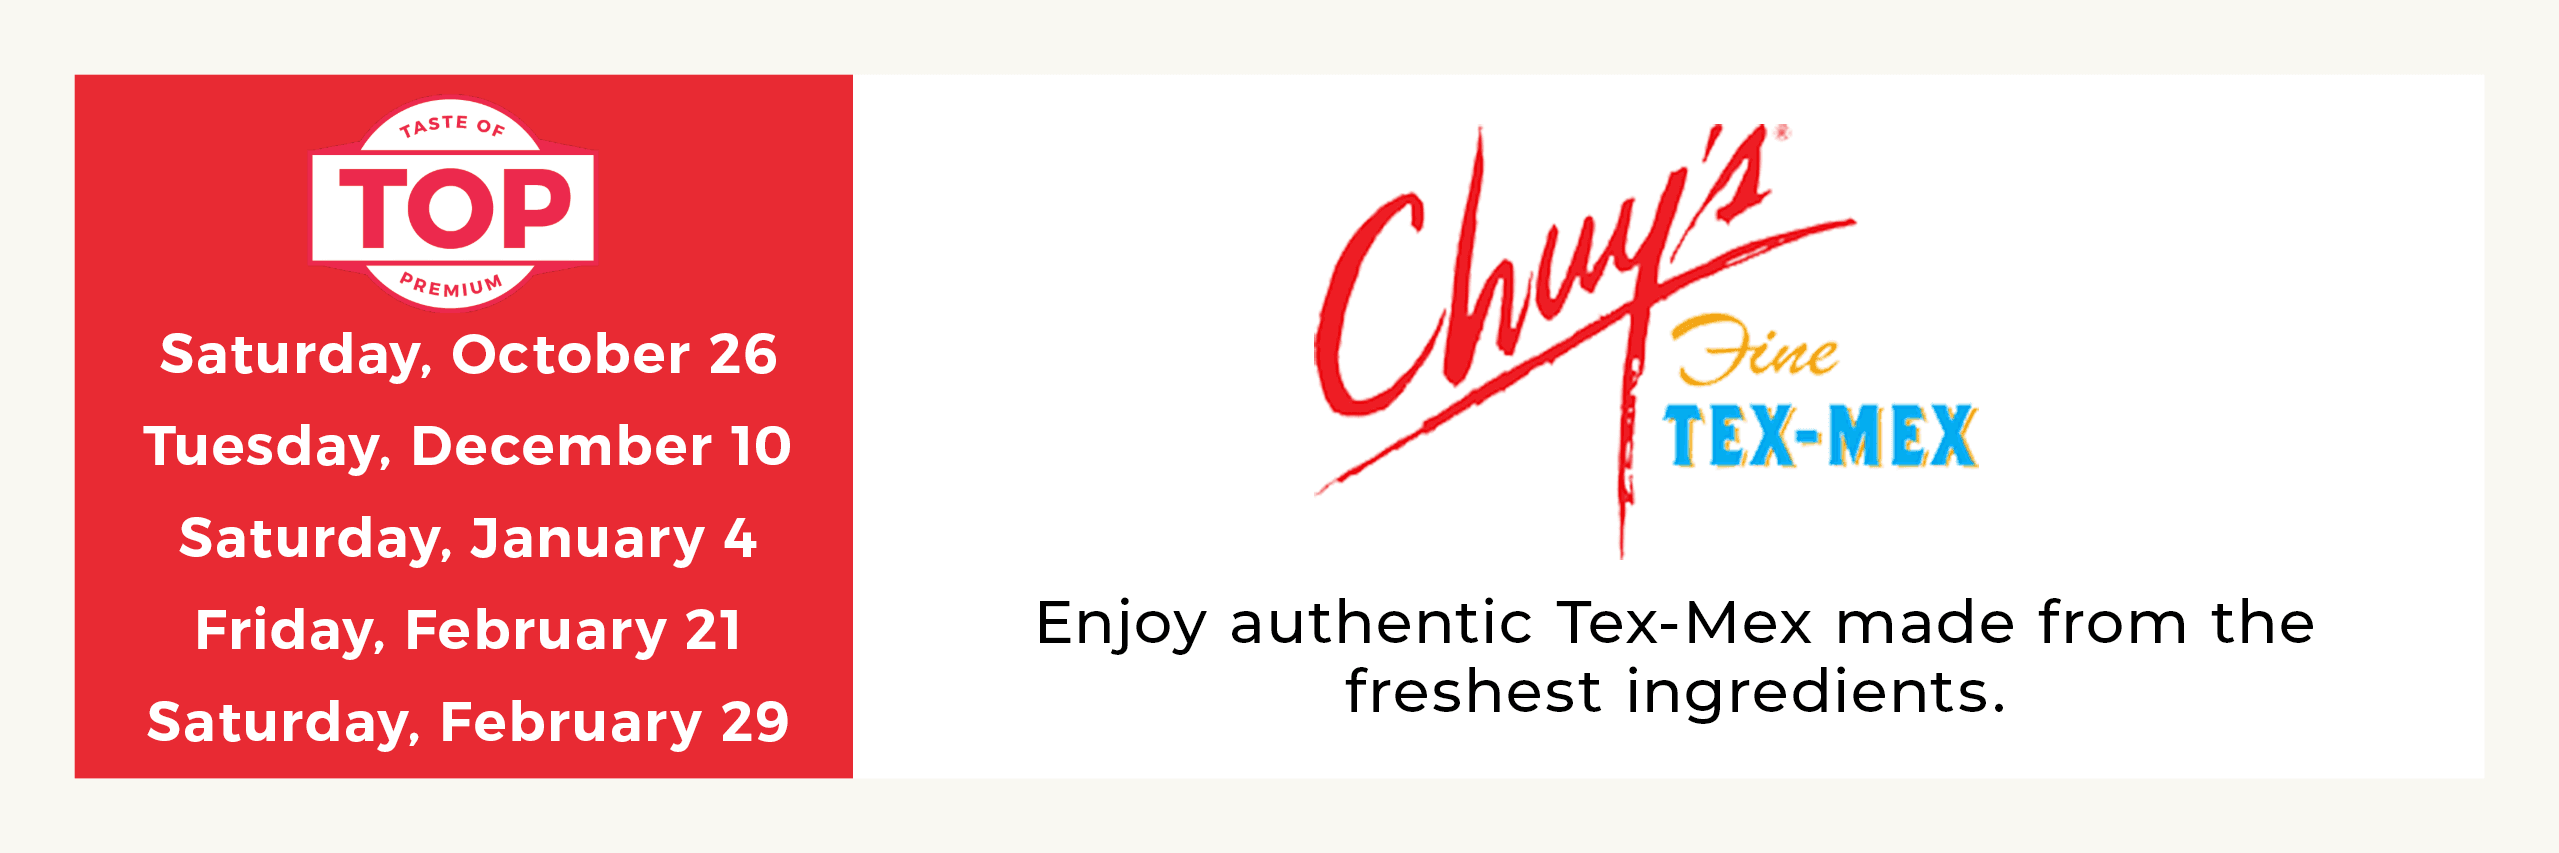 Chuy's Meal Service Dates Opens in new window